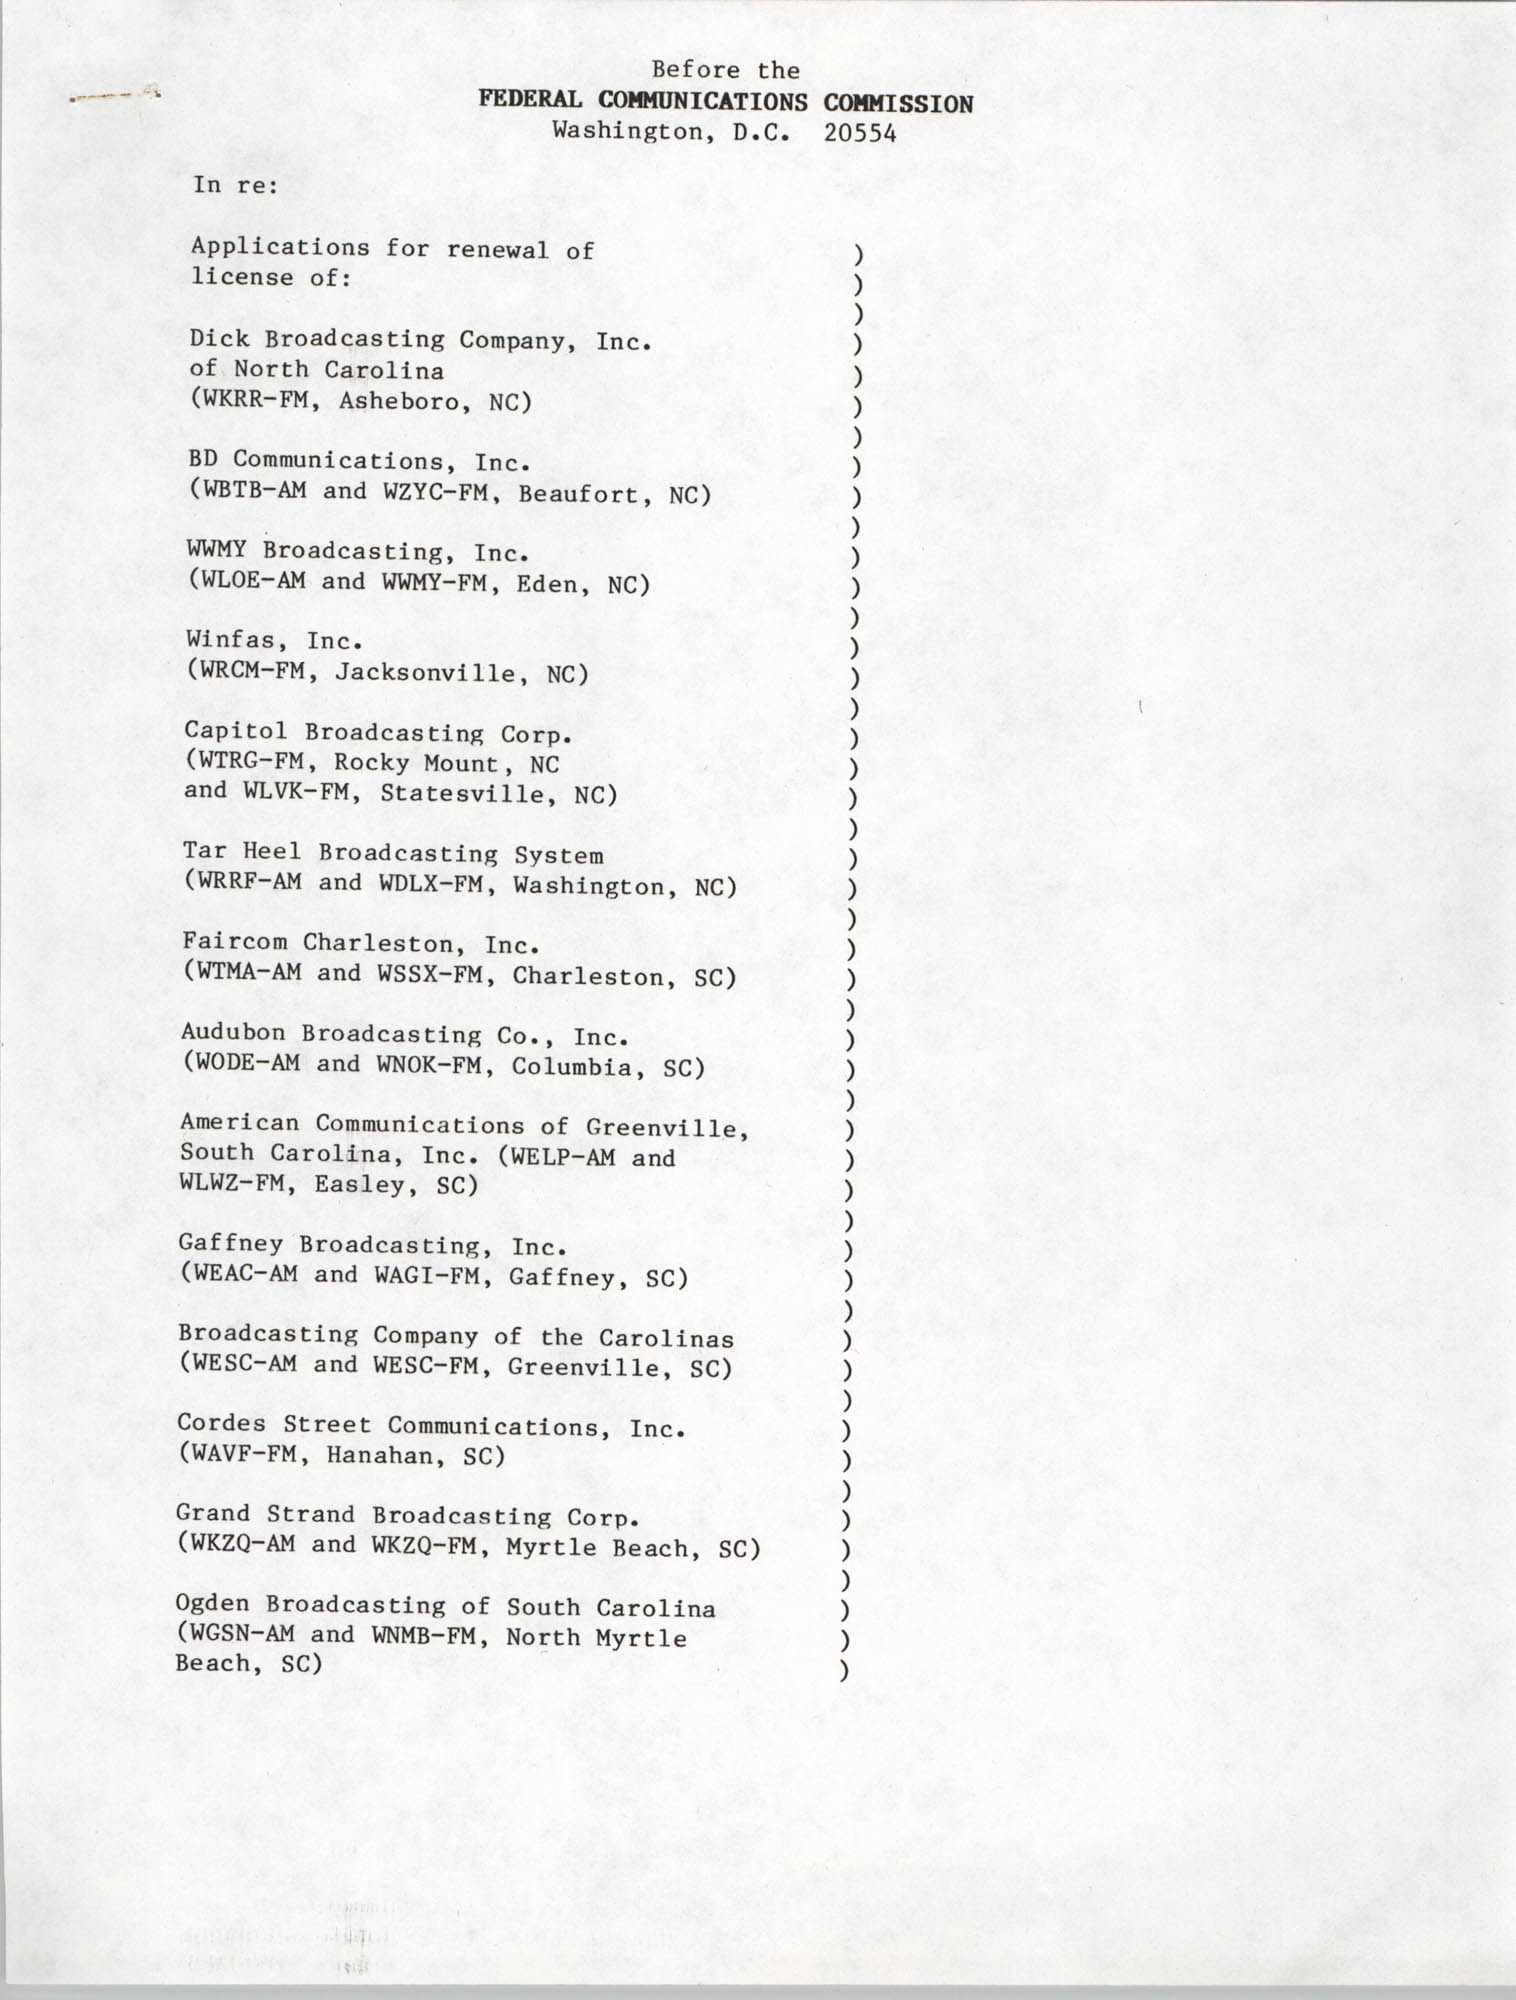 Letter from David Honig to Donna Searcy, December 12, 1988